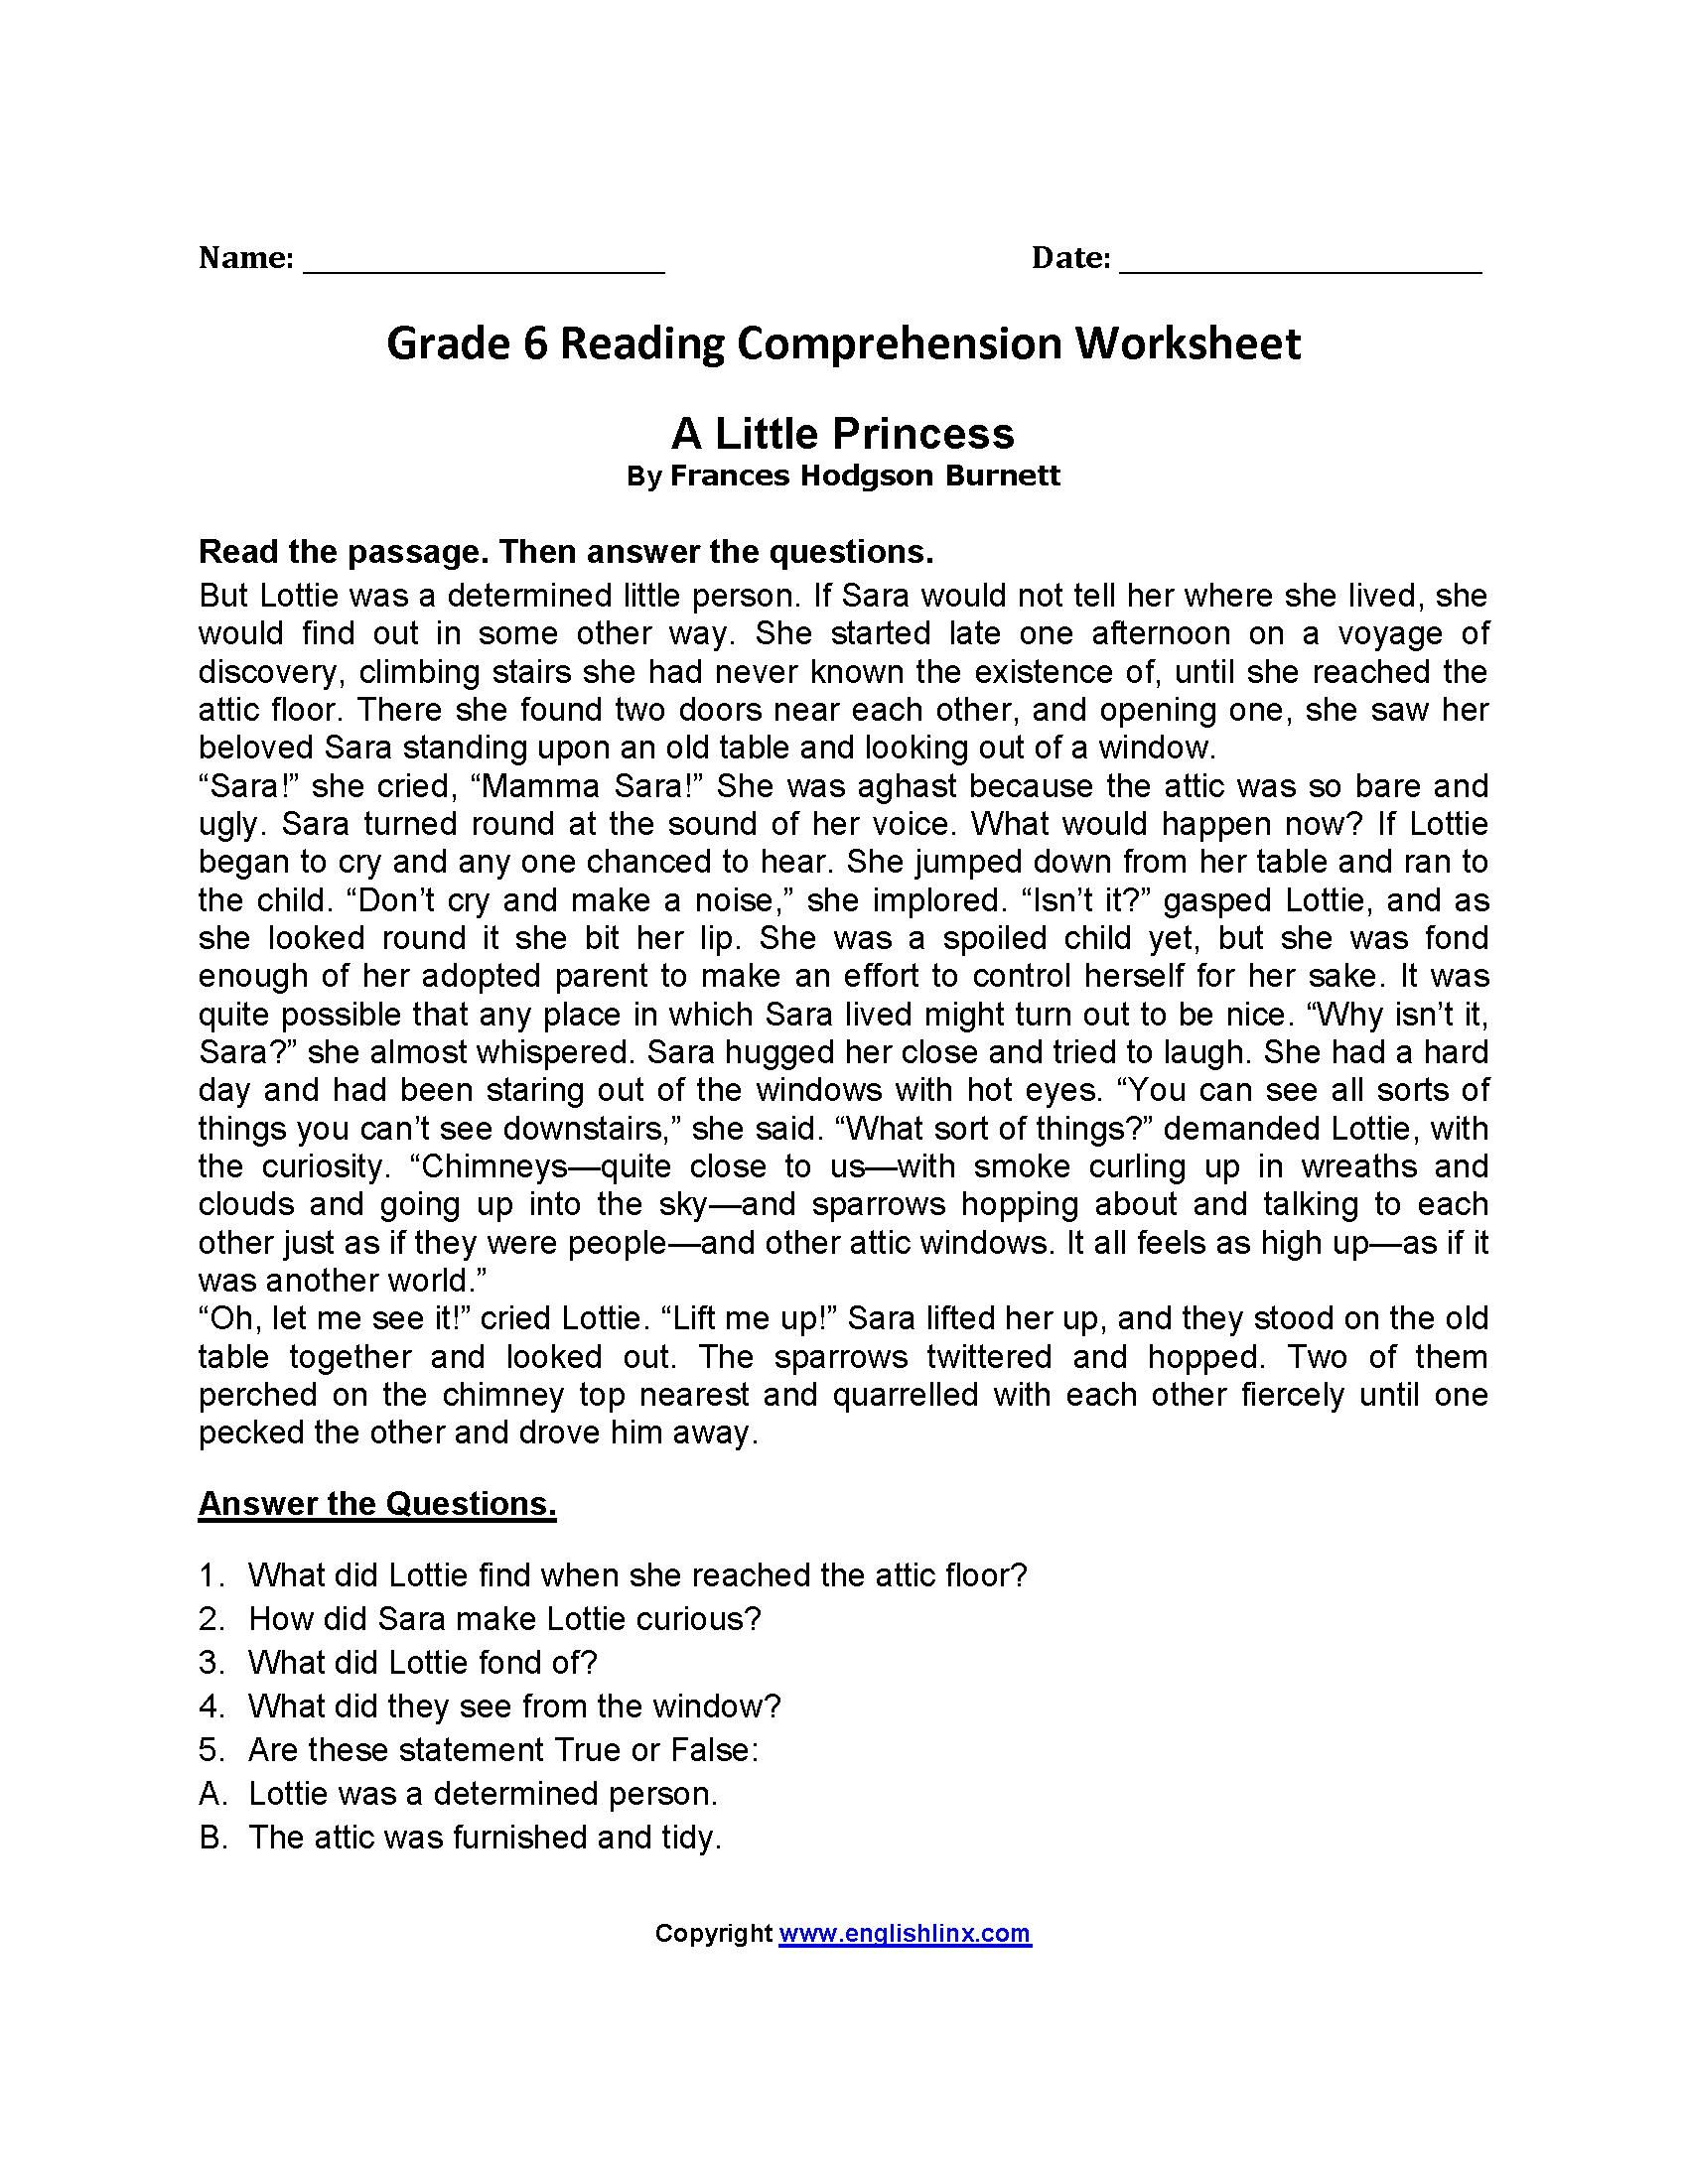 Free Printable Reading Worksheets For Grade 6 2 in 2020